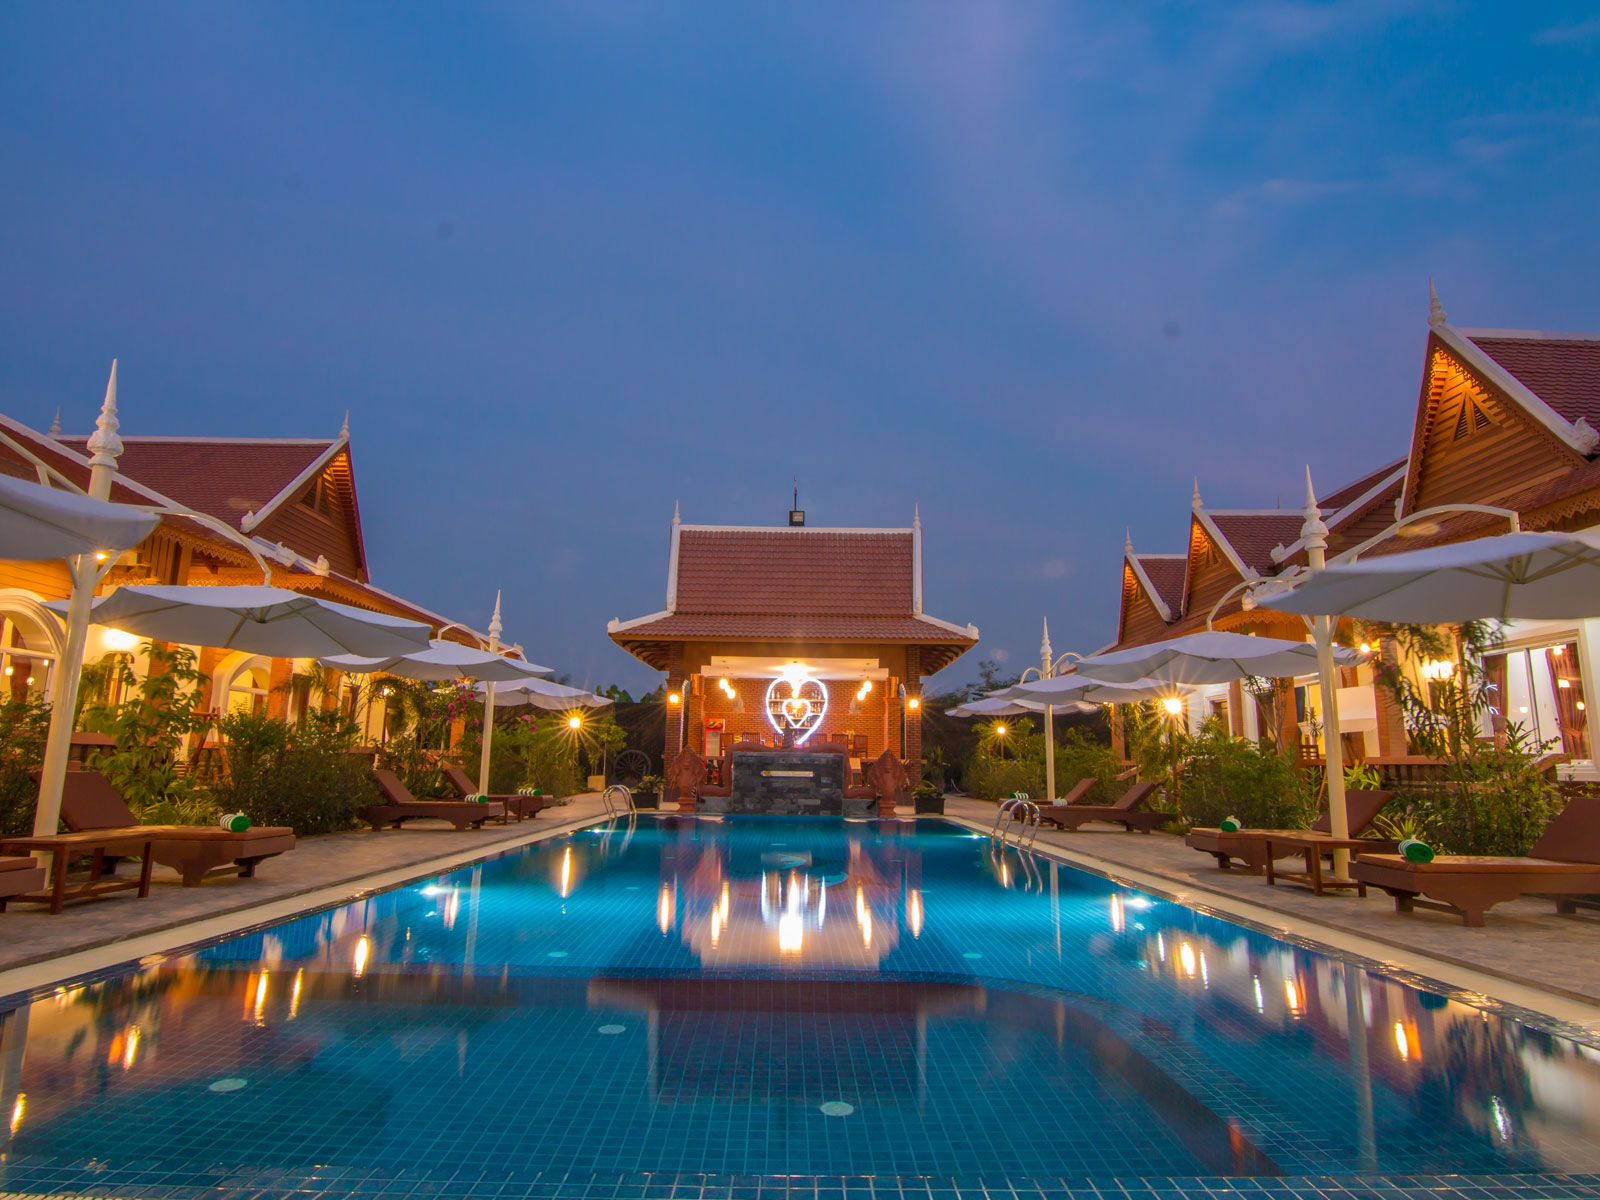 Ravorn Villa Boutique Resort & Restaurant